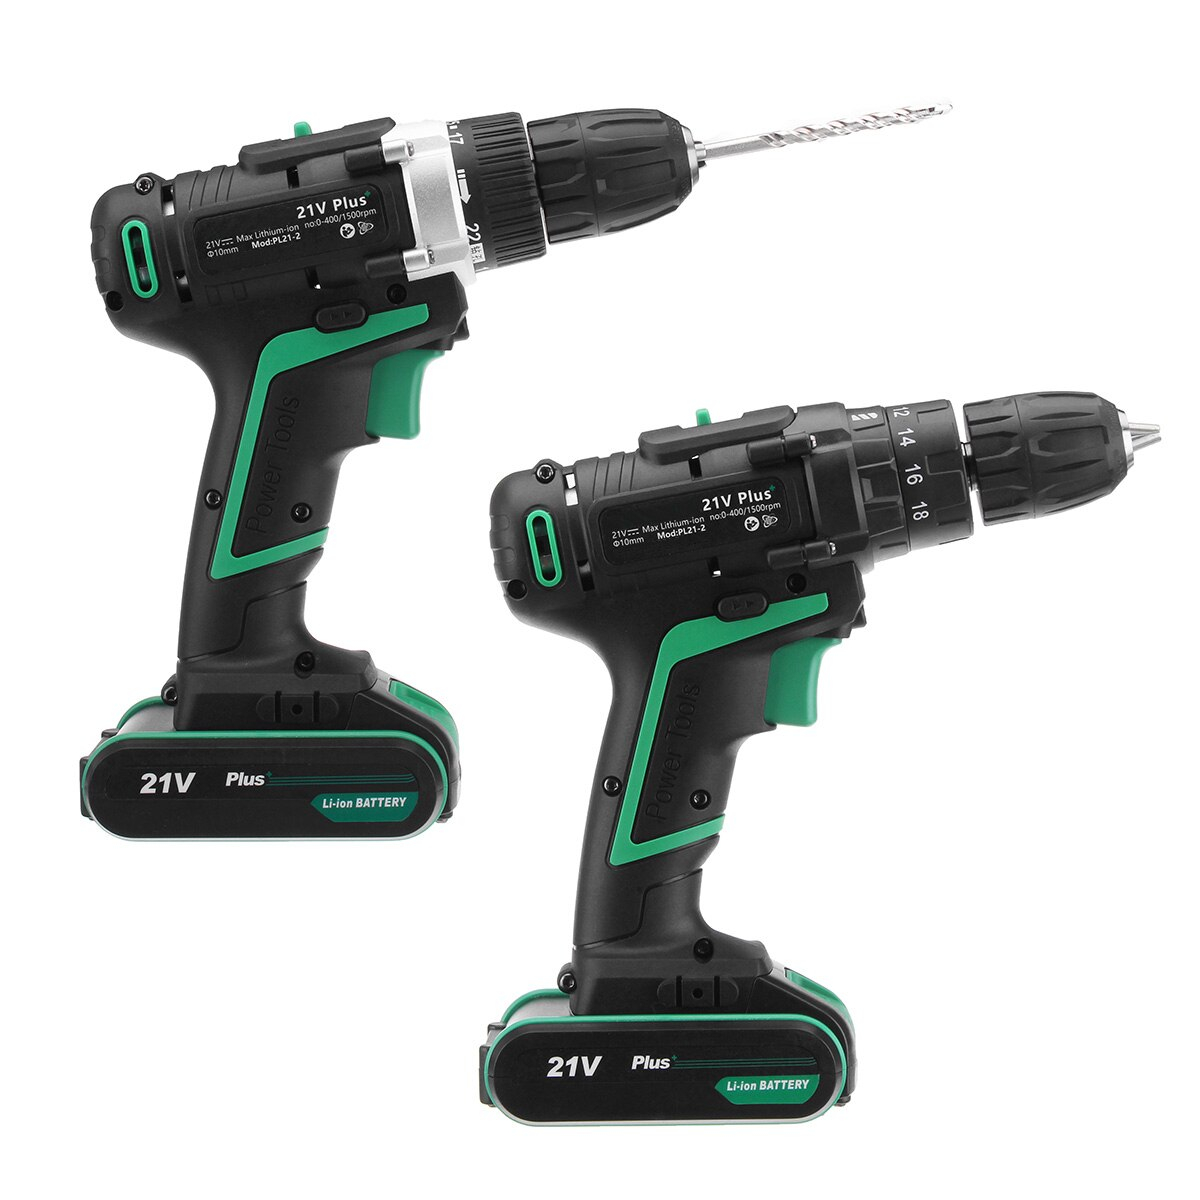 AC 100-240V 21V Plus Electric Screwdriver Cordless Electric Drills Driver Power Tools Included Rechargeable Lithium-ion Battery